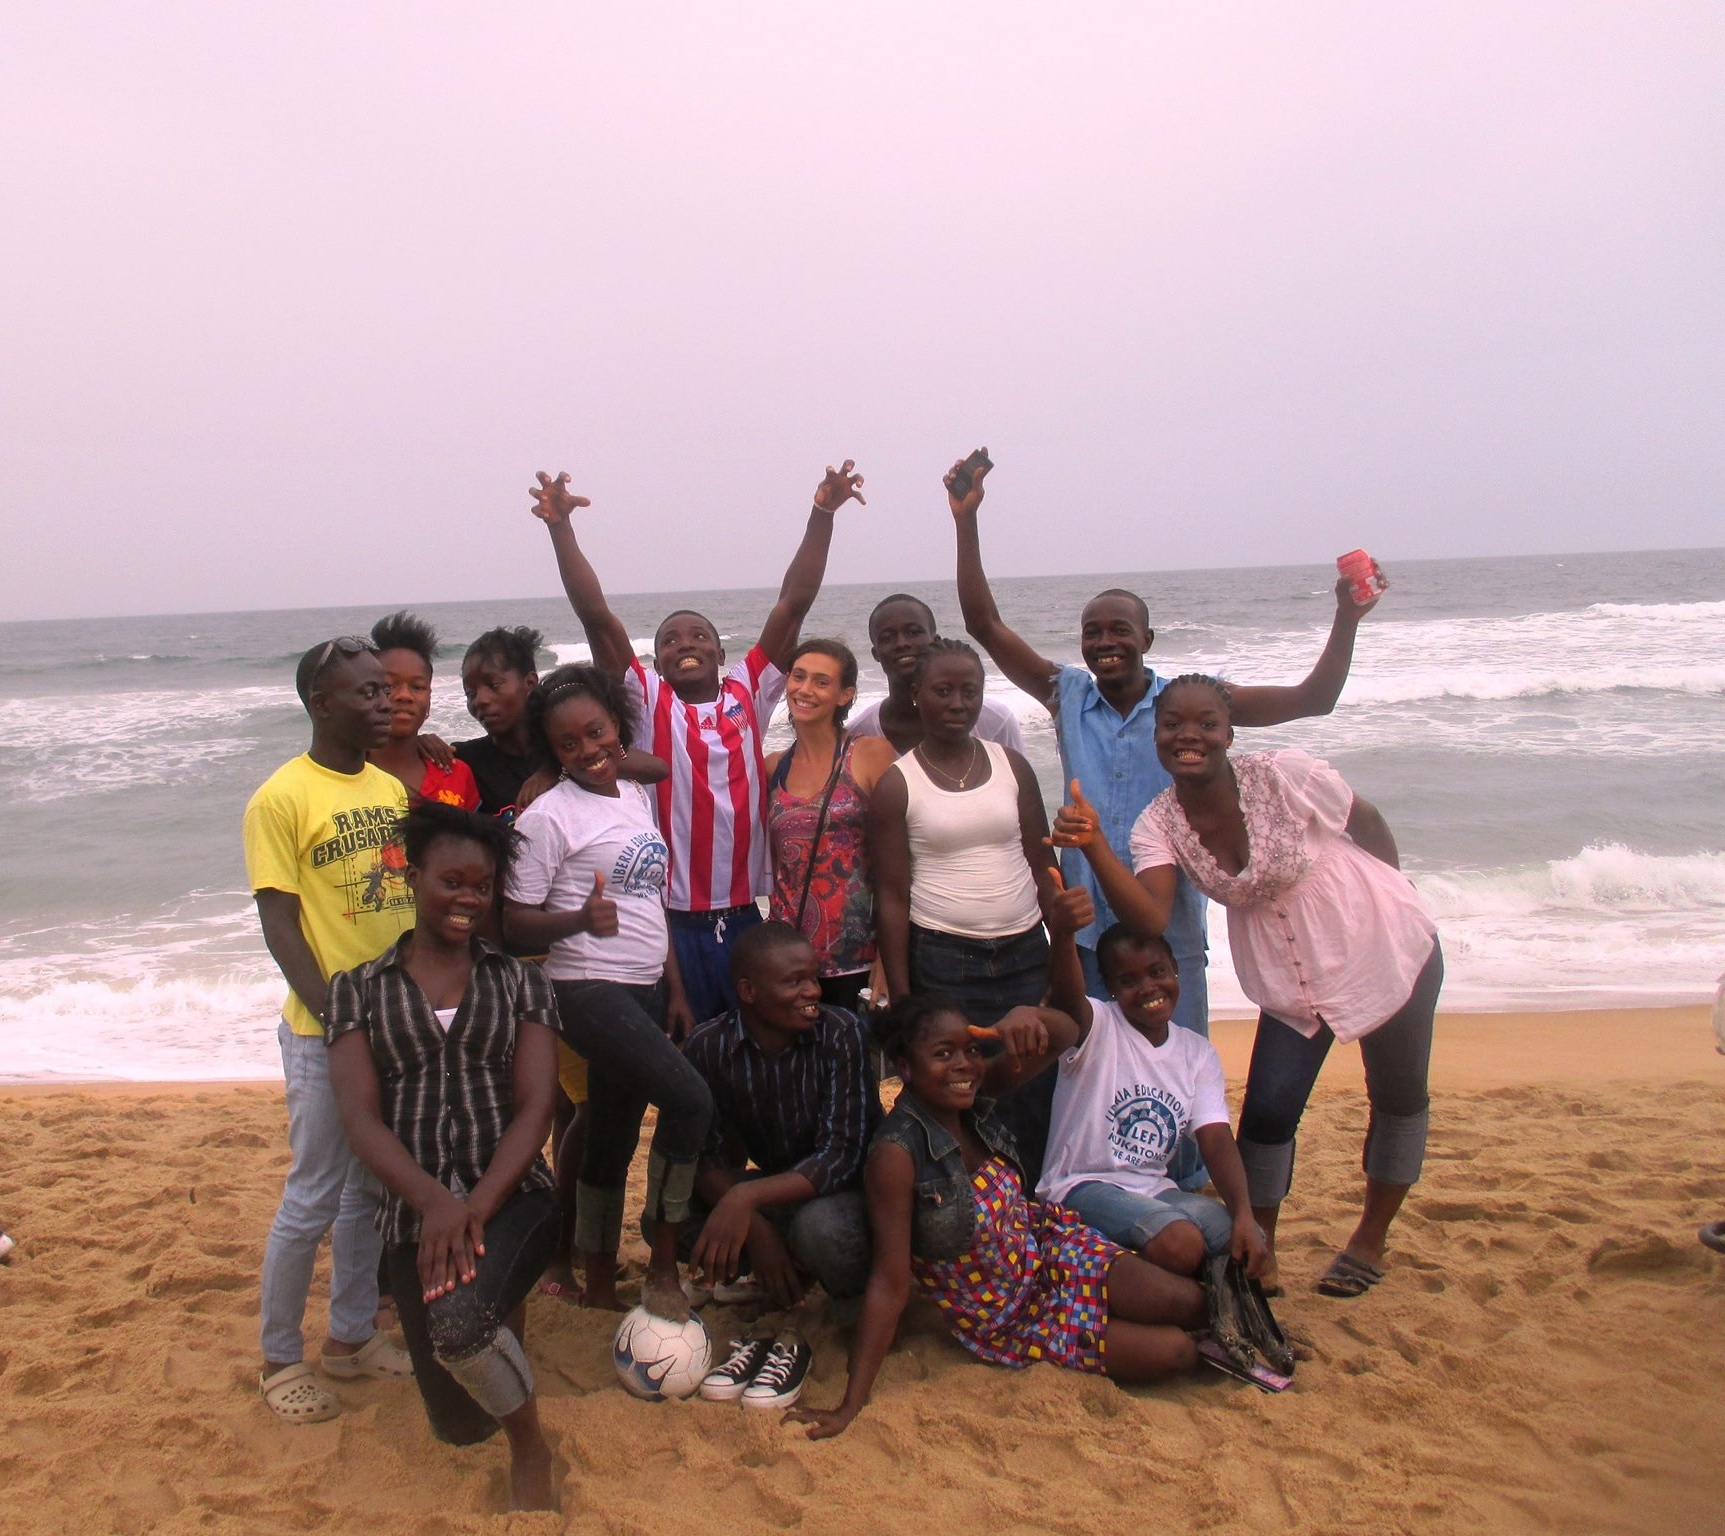 Monrovia students and Program Director, Kim celebrating Liberian Independence Day on the beach.